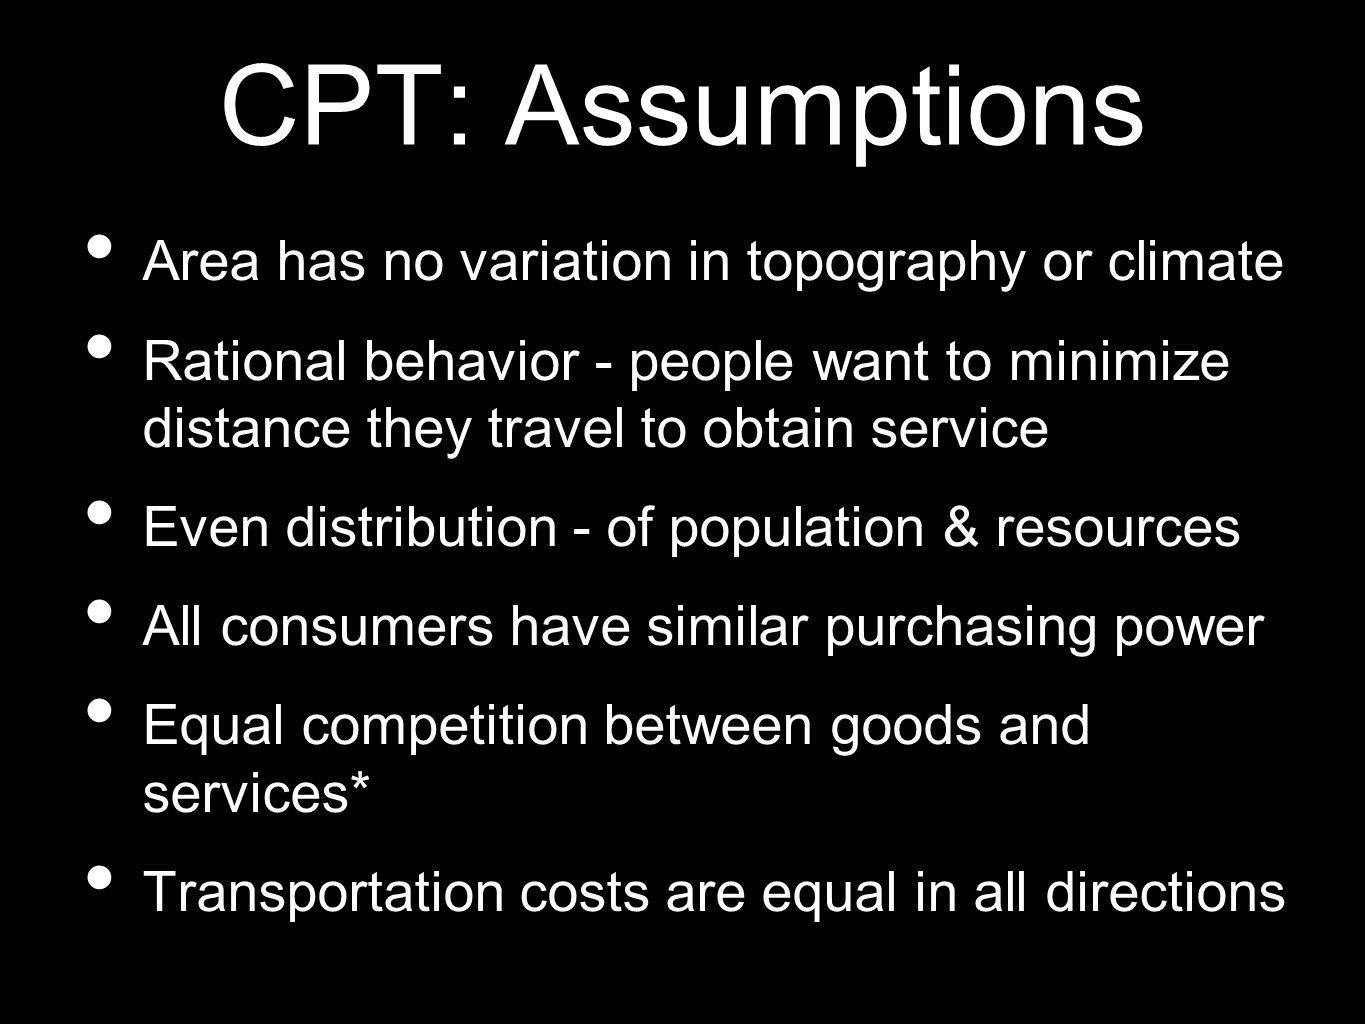 CPT: Assumptions Area has no variation in topography or climate